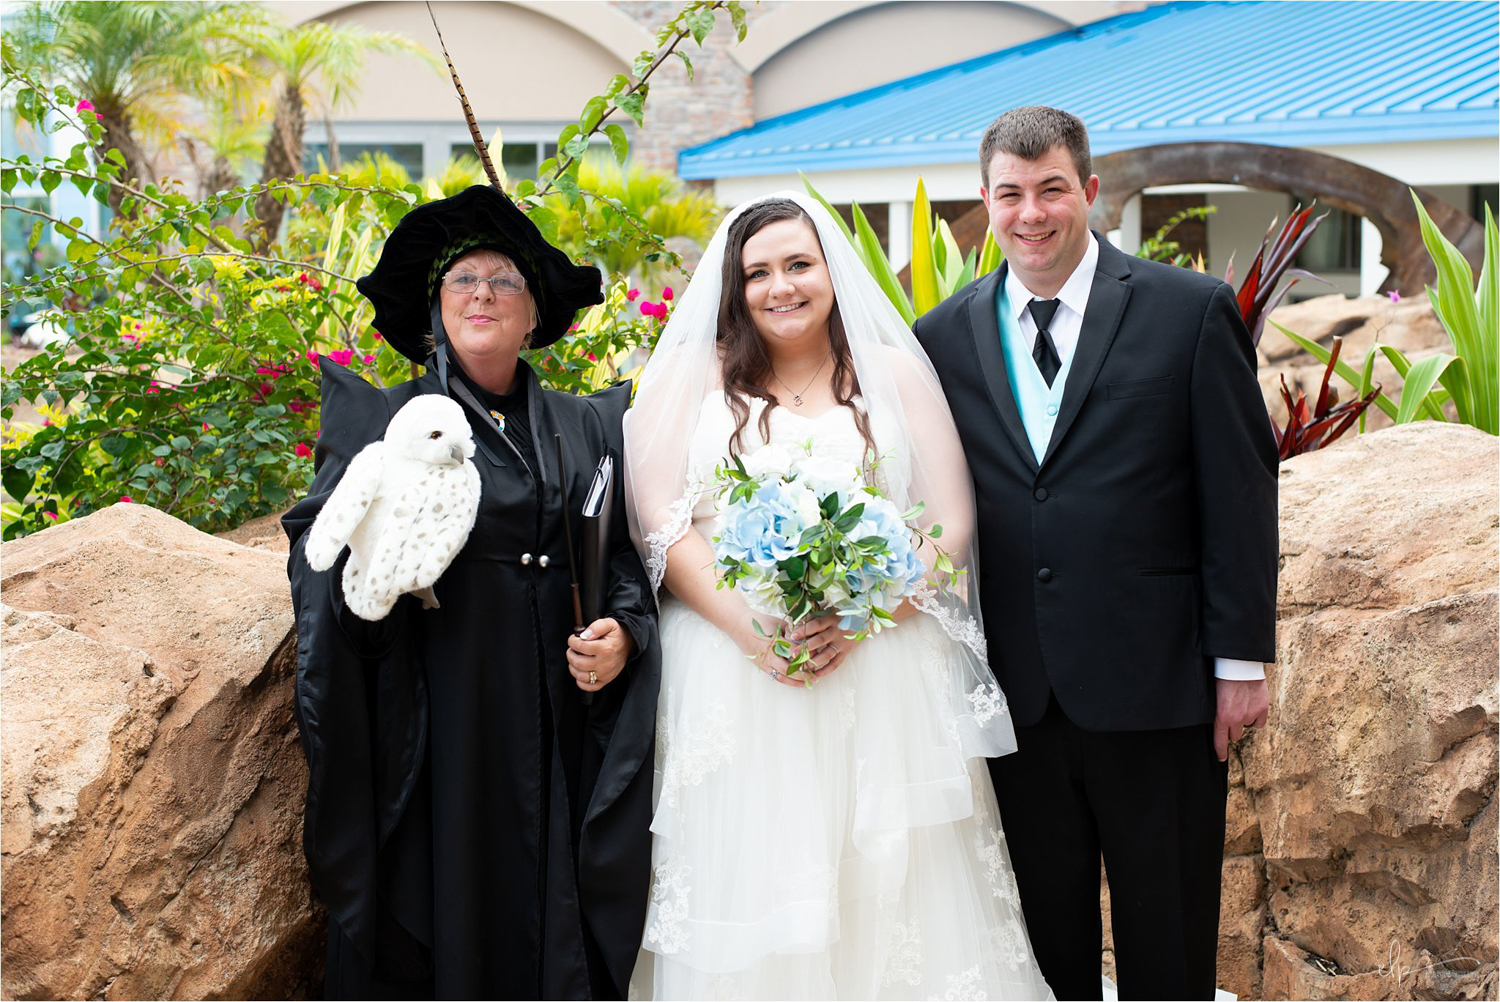 Harry Potter theme wedding officiant.